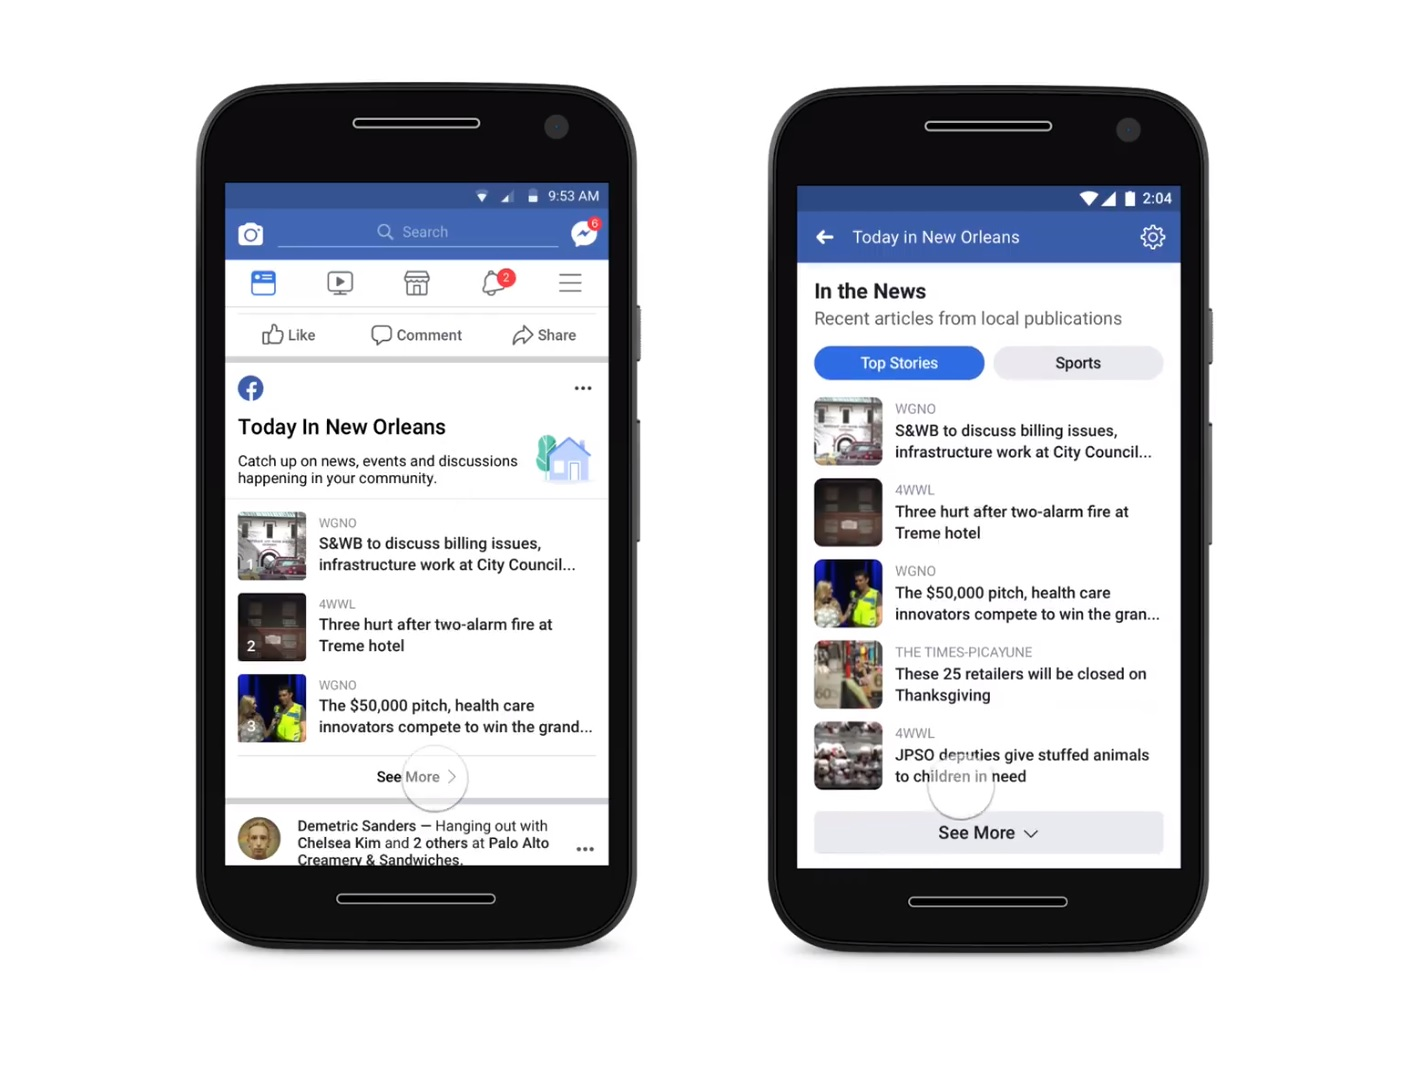 Facebook Launches Local News Feature in 400 Cities